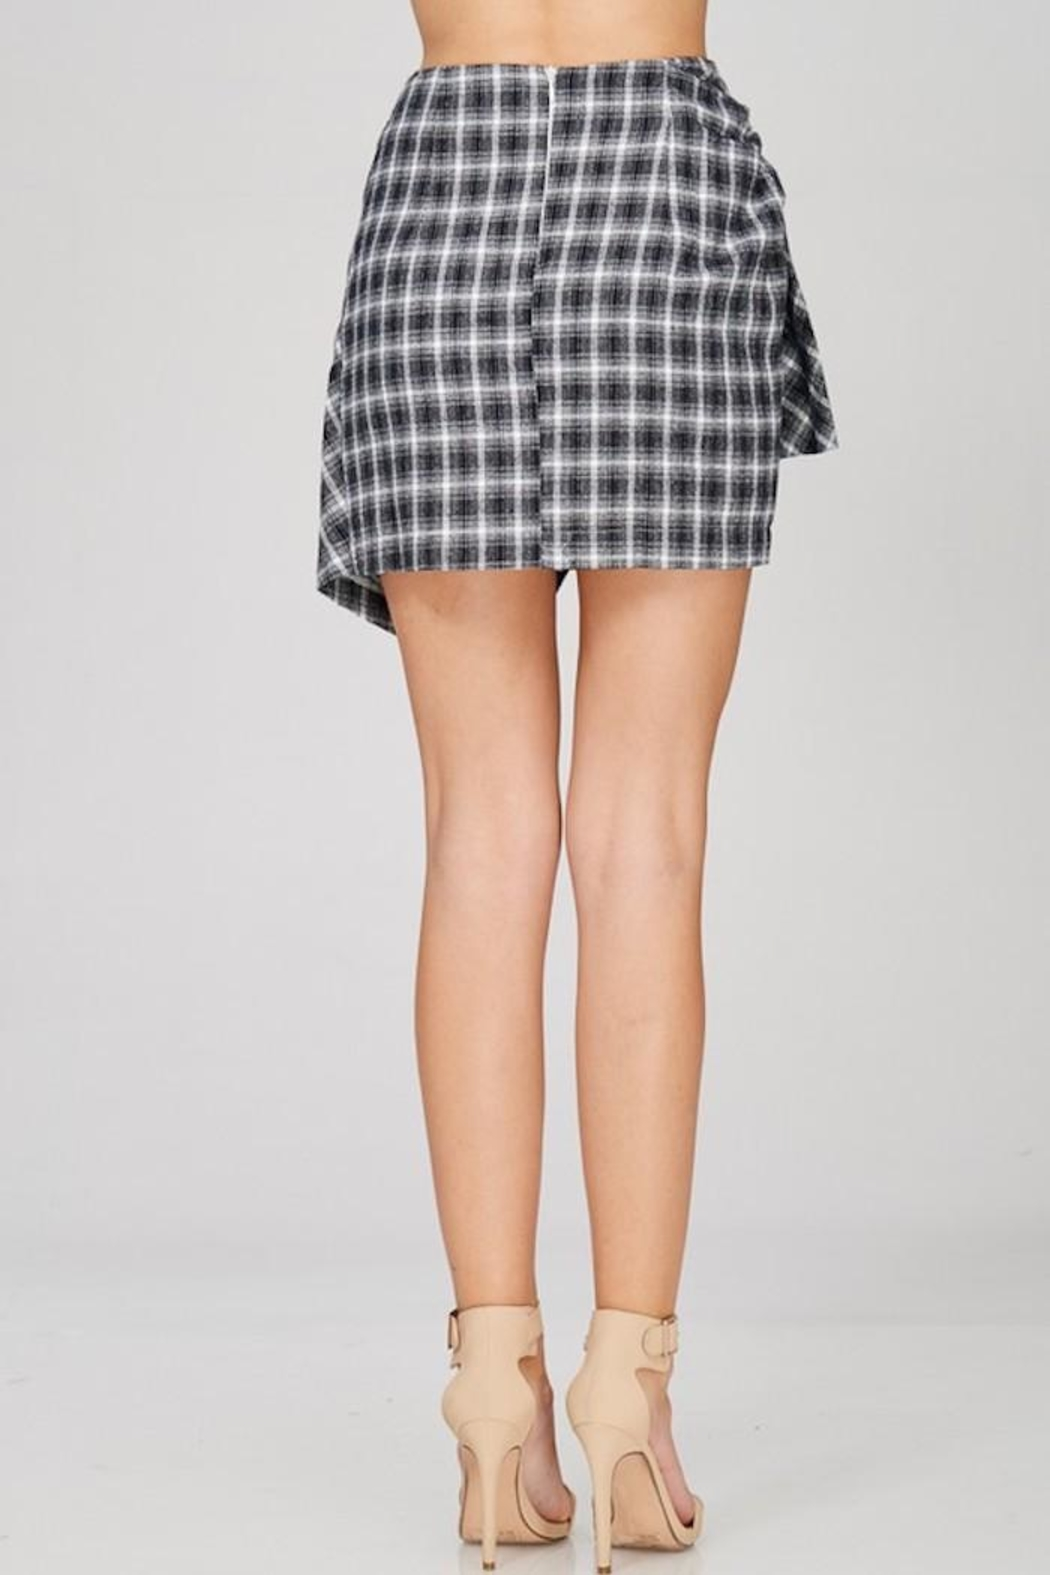 Emory Park Plaid Tie Skirt - Side Cropped Image